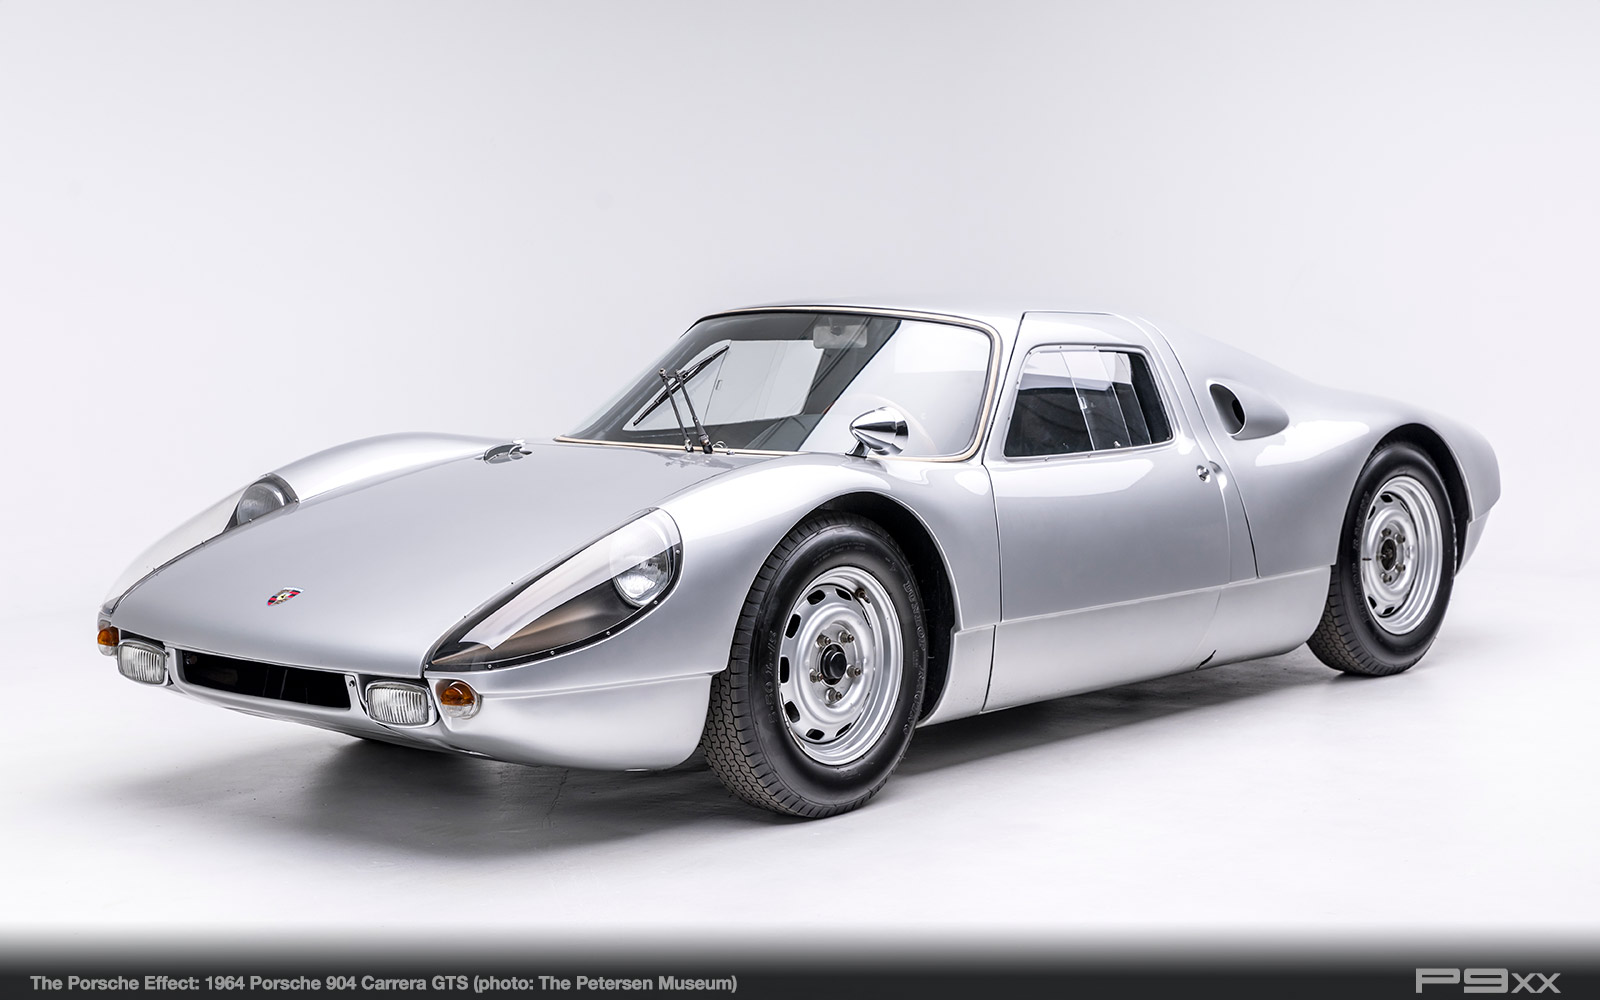 1964-904-Carrera-GTS-Petersen-Automotive-Museum-The-Porsche-Effect-354